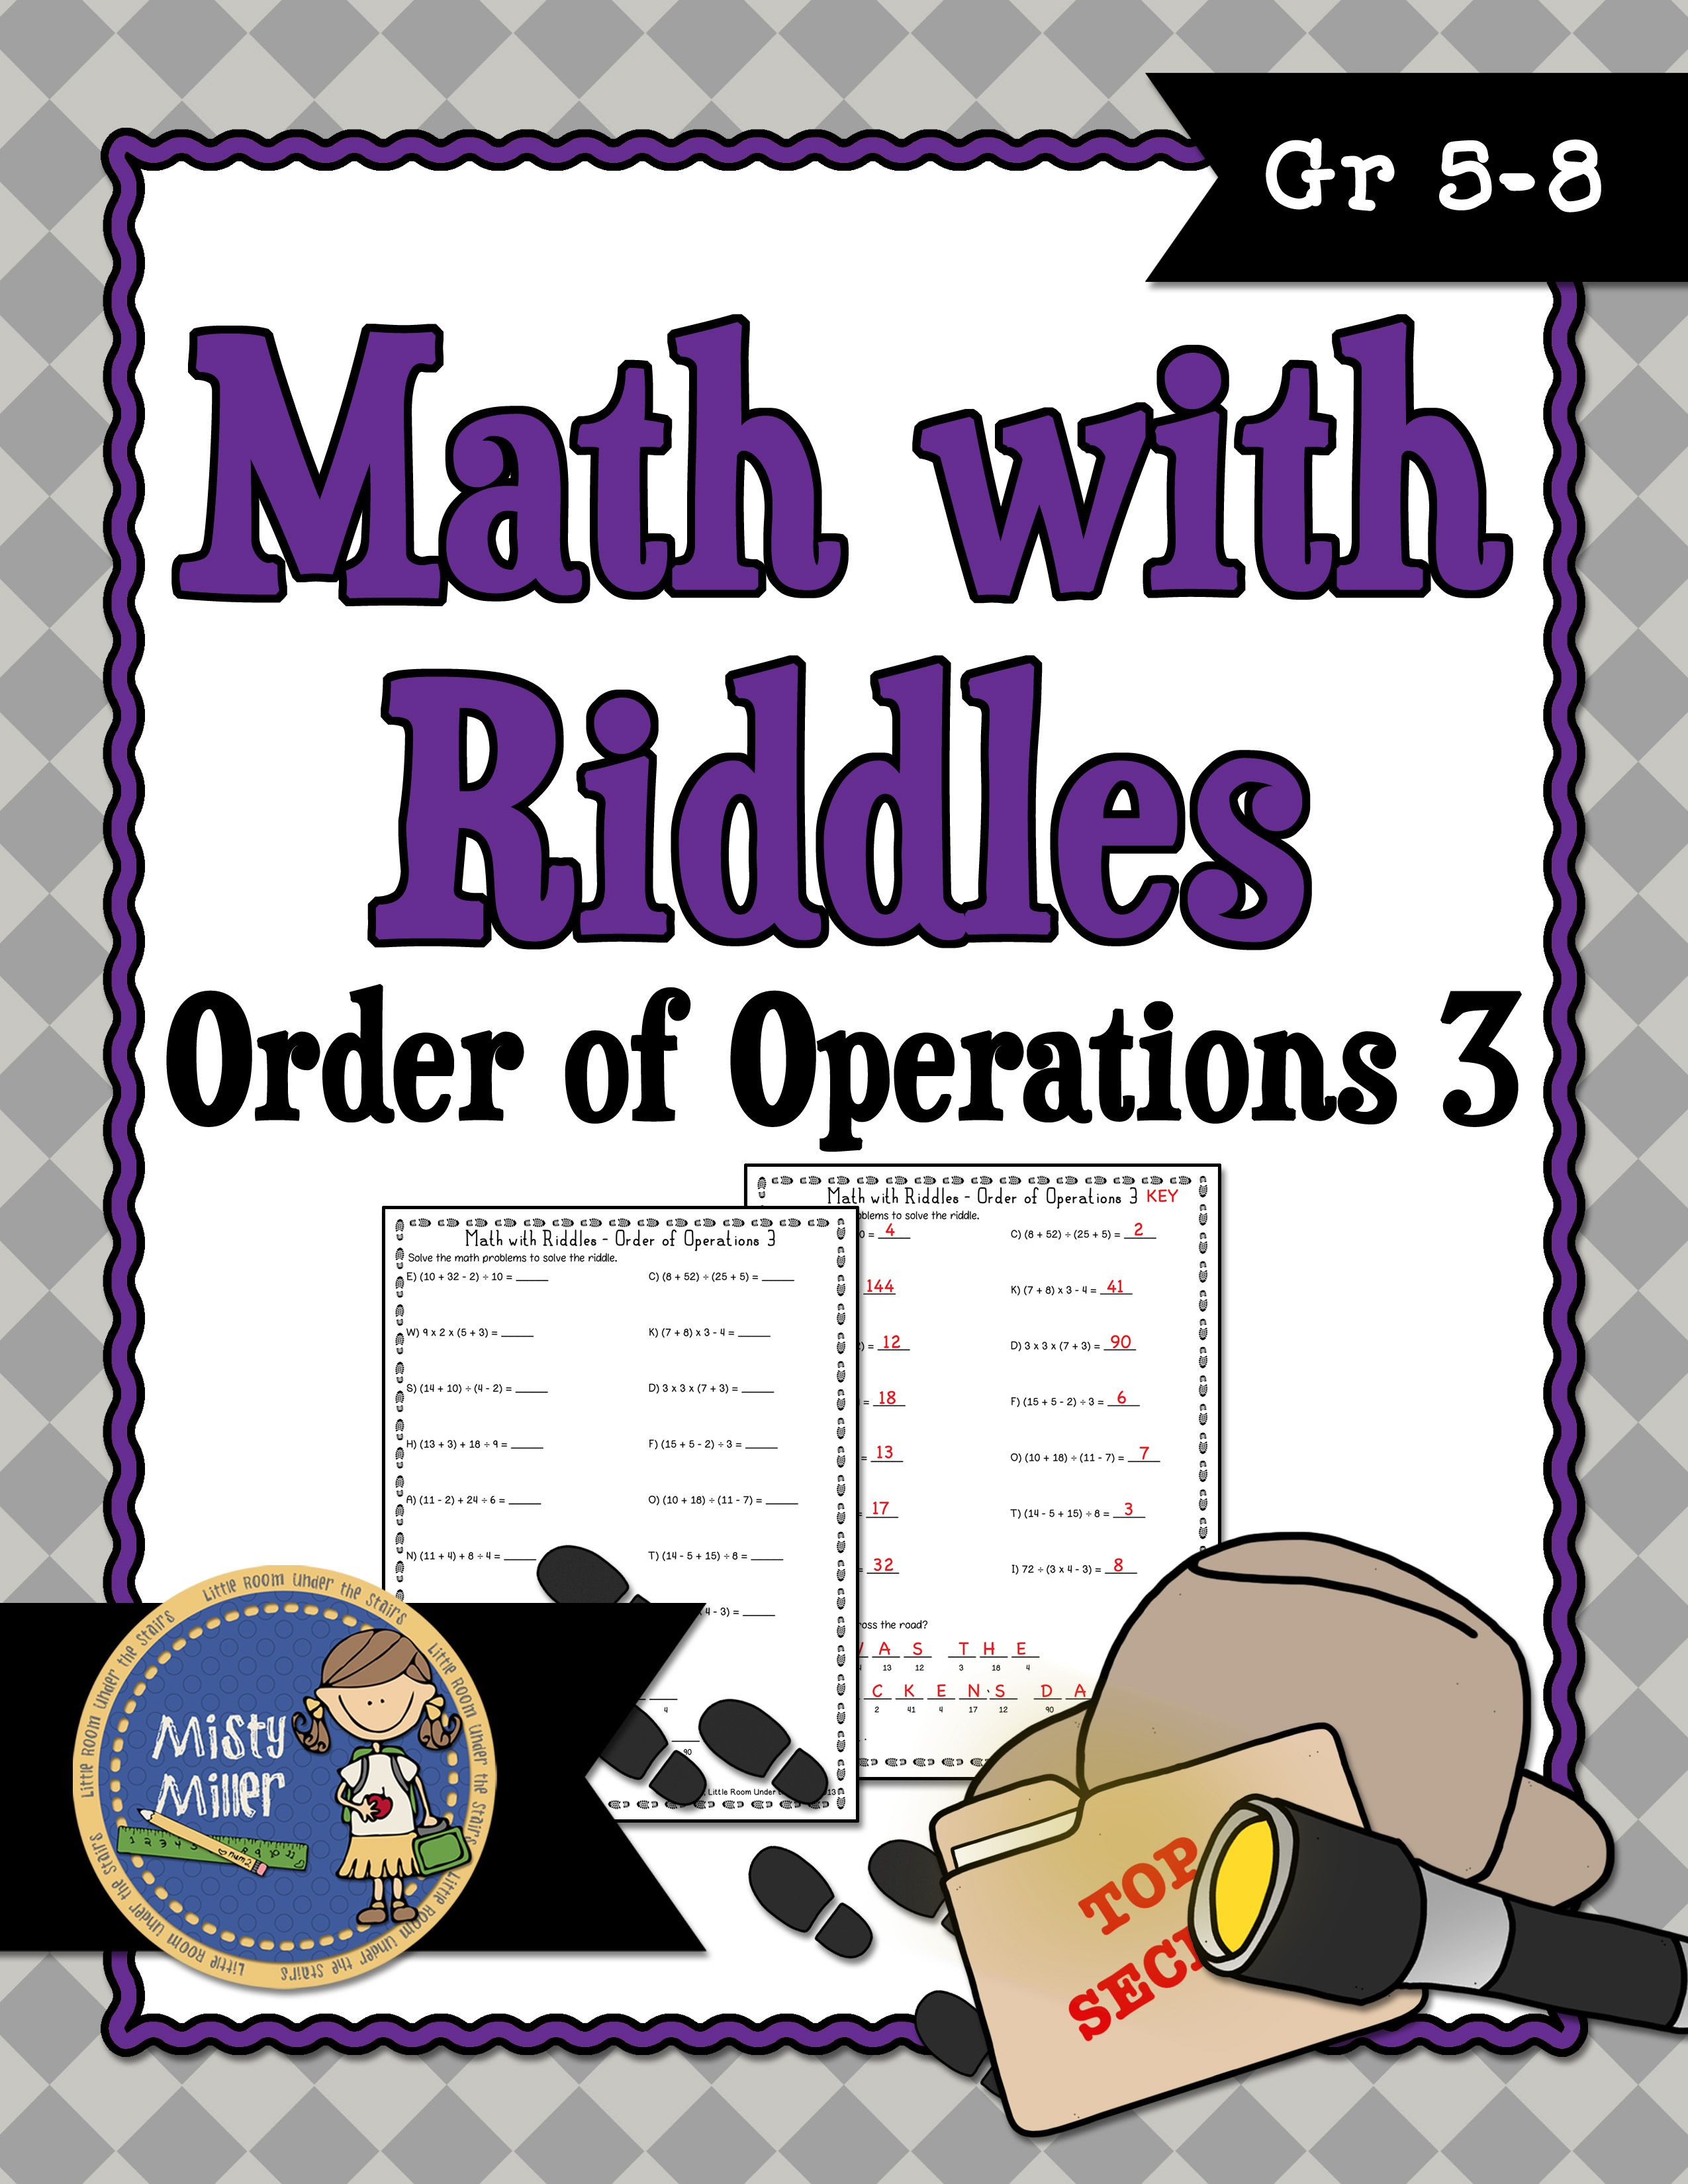 Order Of Operations 3 Math With Riddles